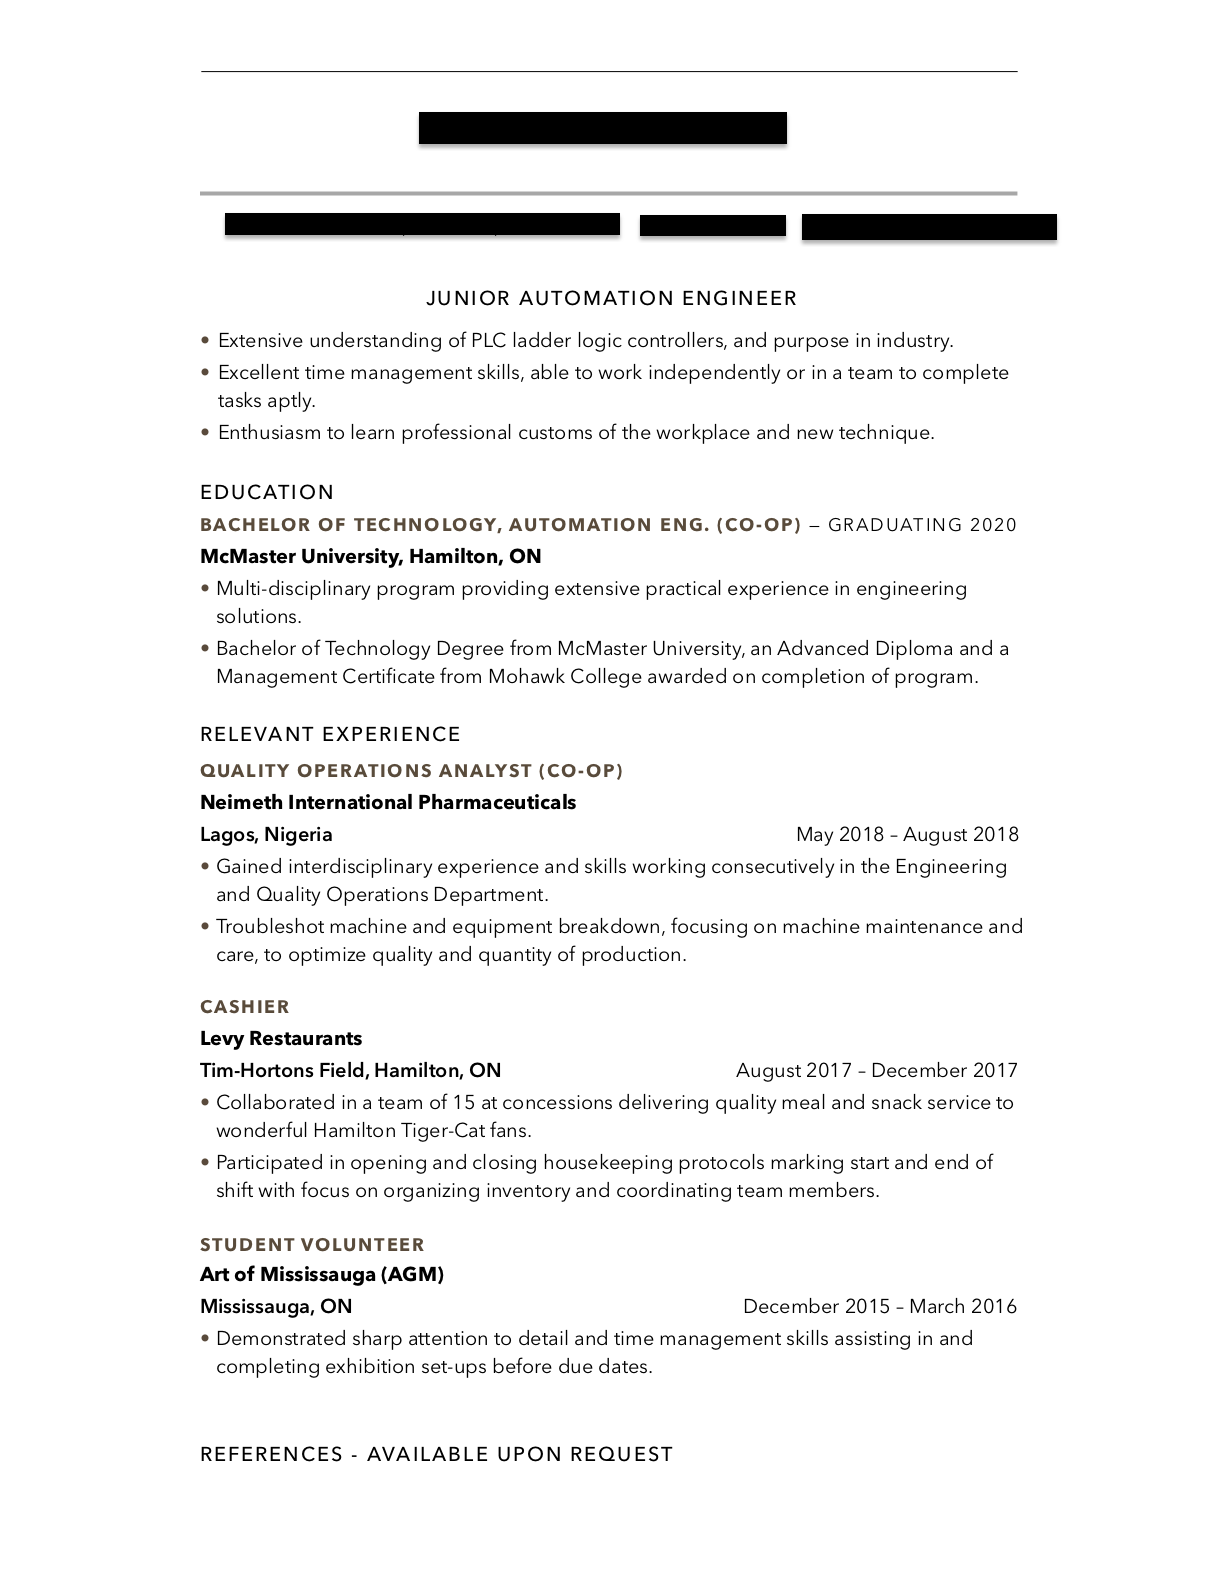 Computer Science Resume Reddit Lovely Reddit Resume Help In 2020 Job Resume Examples Resume Writing Services Resume Writing